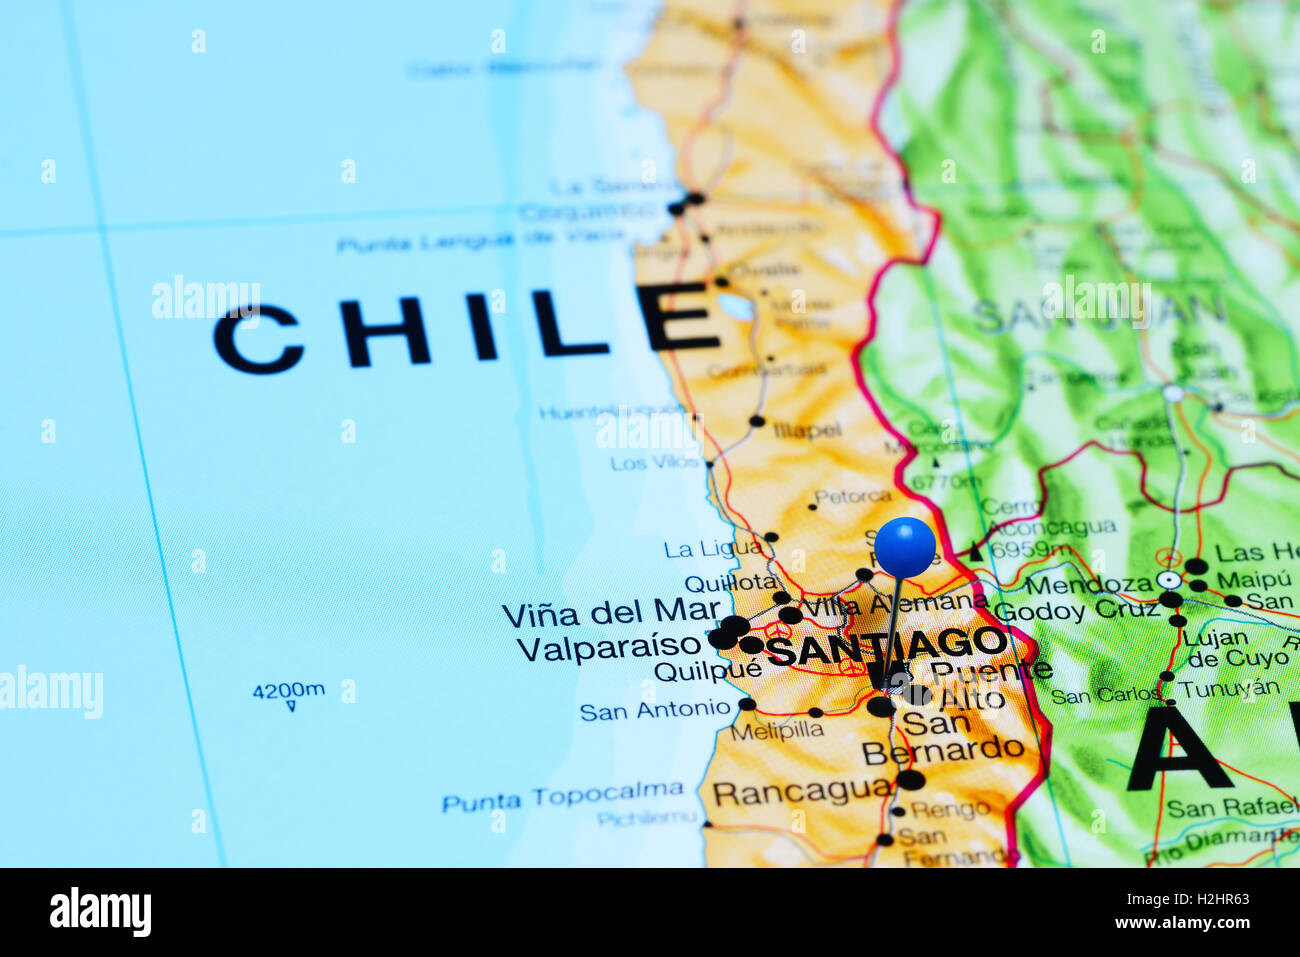 Santiago pinned on a map of Chile Stock Photo: 122093275 - Alamy on dominican republic map, juarez map, punta arenas map, lima map, san juan map, michoacan map, luanda map, chile map, kingston map, caracas map, kabul map, quito map, buenos aires map, bolivia map, andes map, santo domingo map, south america map, montevideo map, rio de janeiro map, torres del paine map,